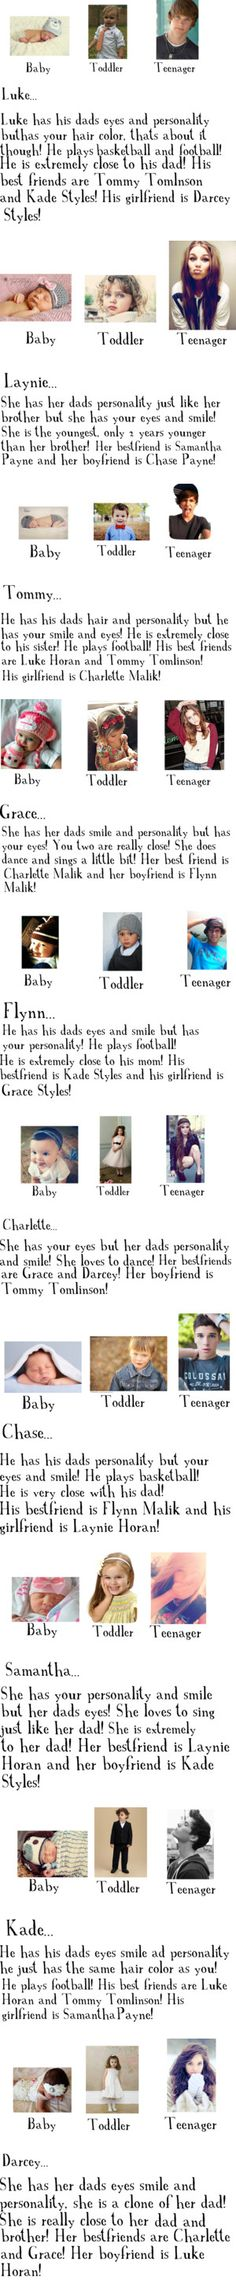 """""""Your kids with One Direction!!"""" by jelec on Polyvore we have awesome kids and it's cool how they are dating one another lol"""